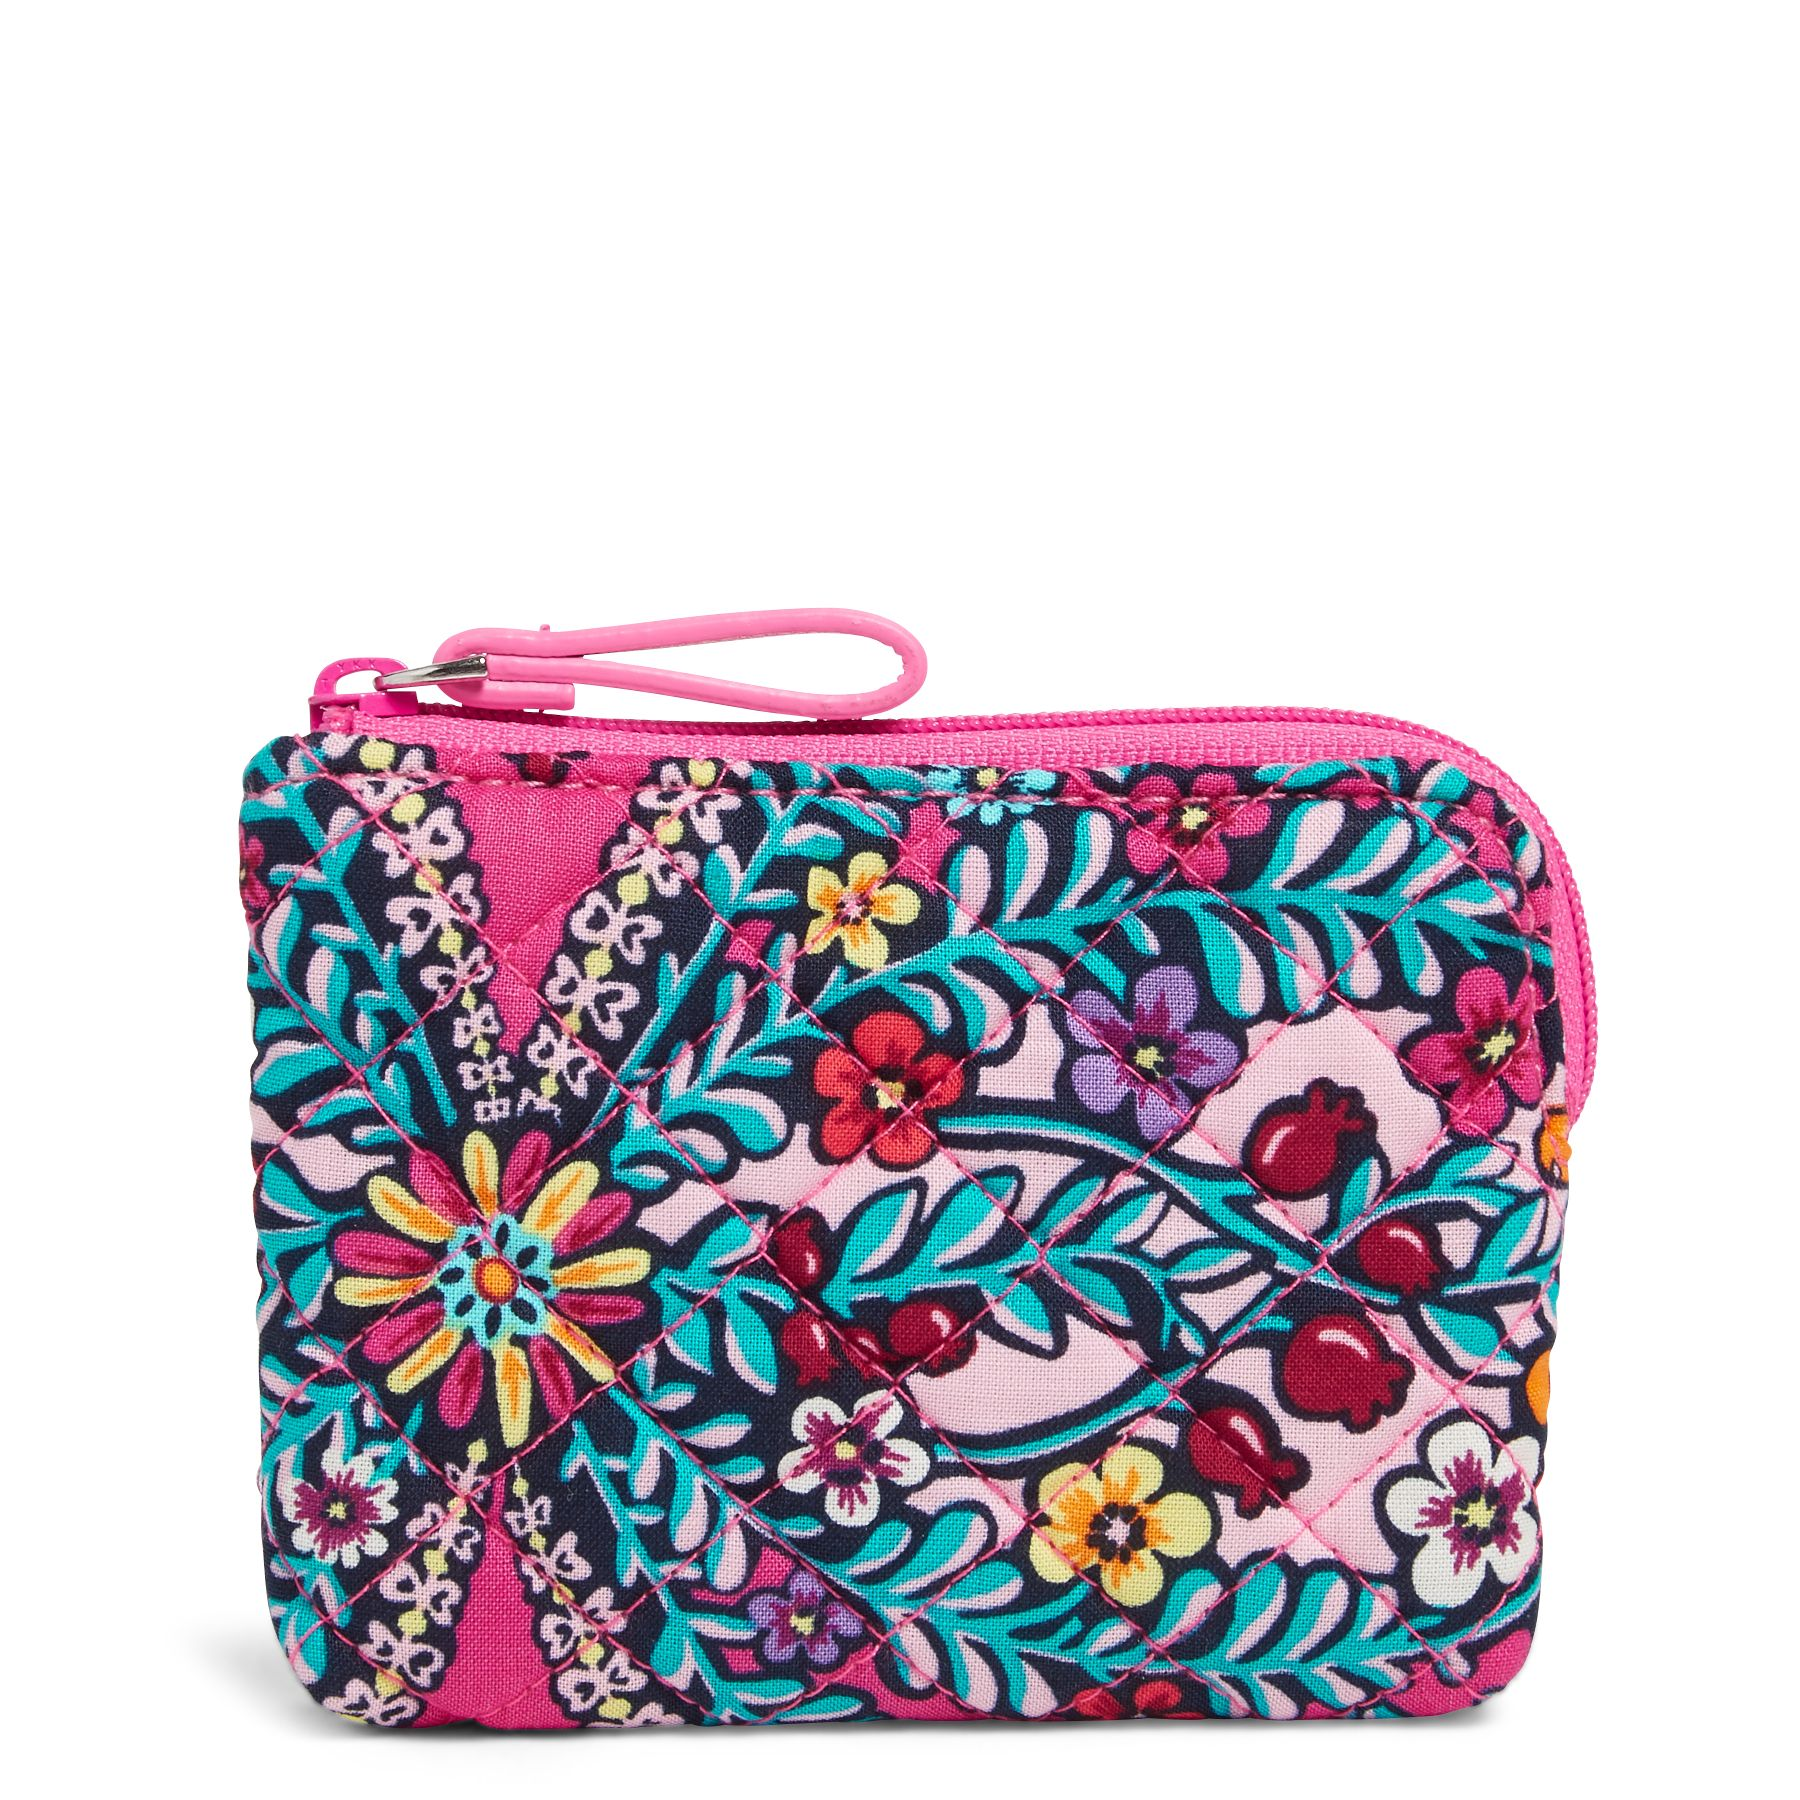 Vera Bradley Coin Purse, Pink (886003573433 Accessories) photo